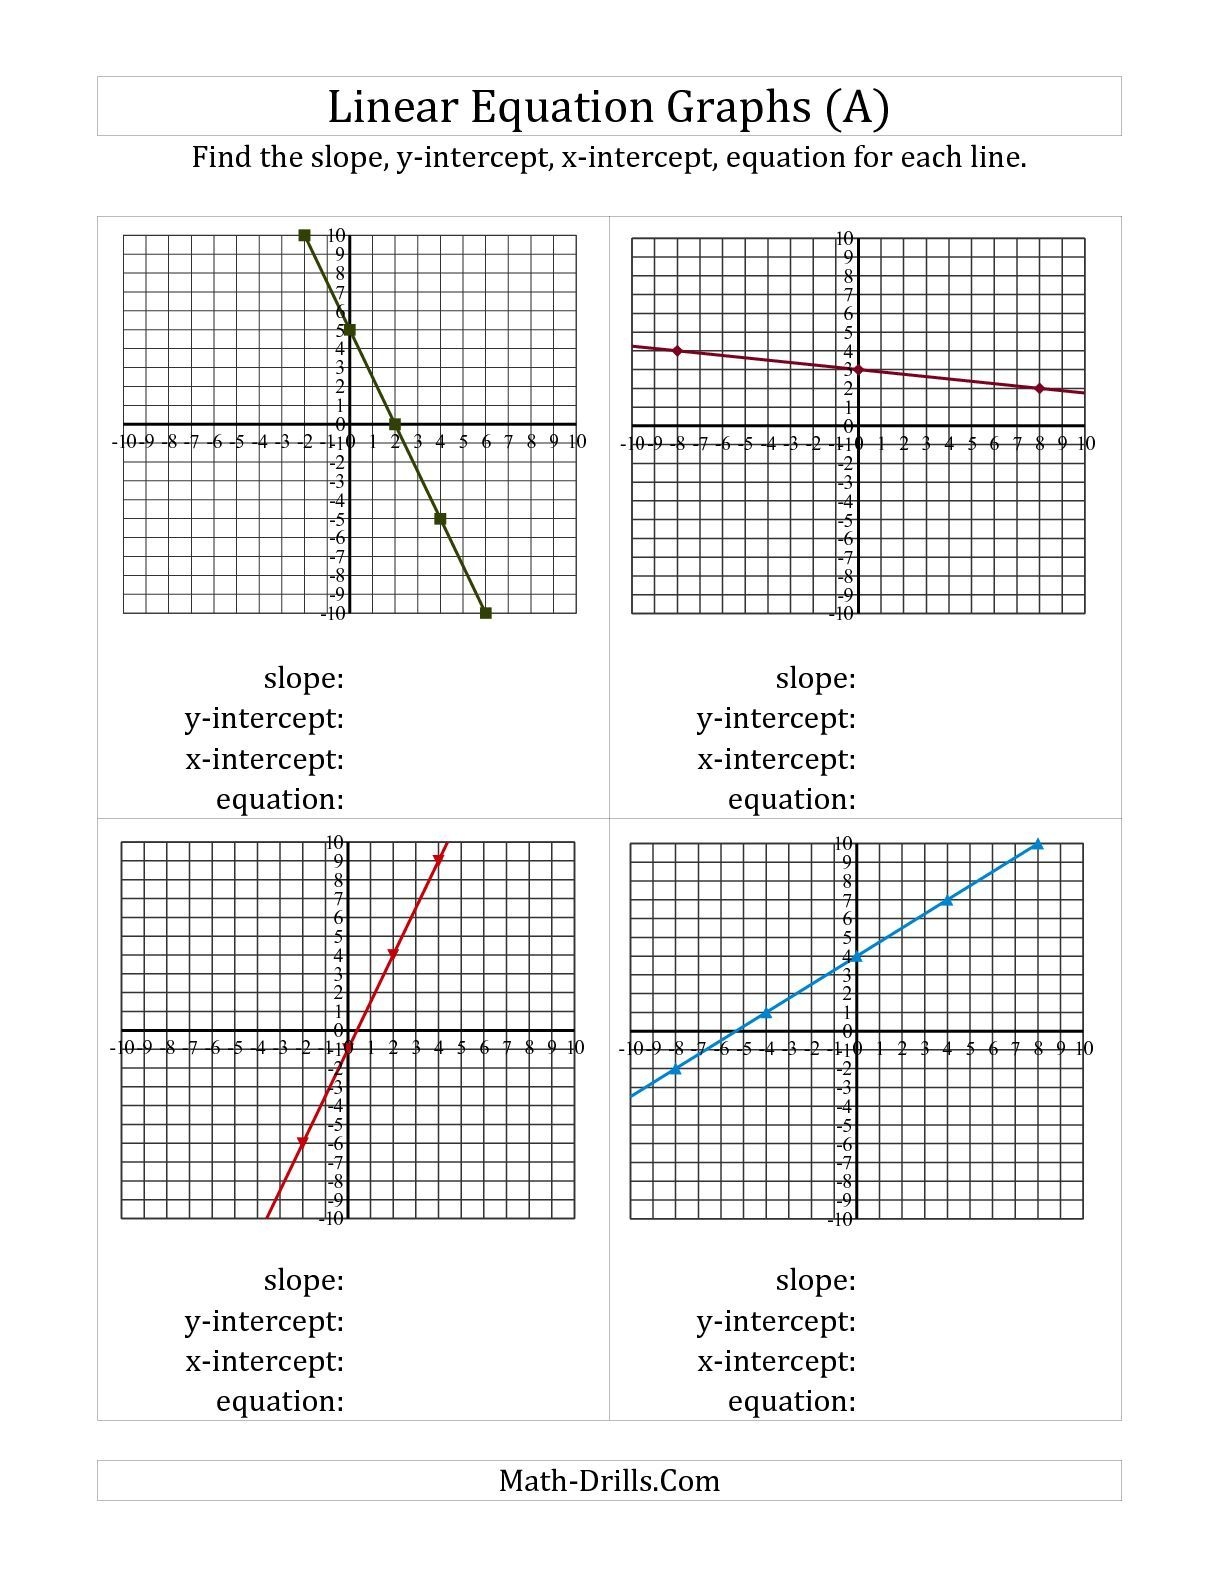 Linear Equations Worksheet For Grade 10